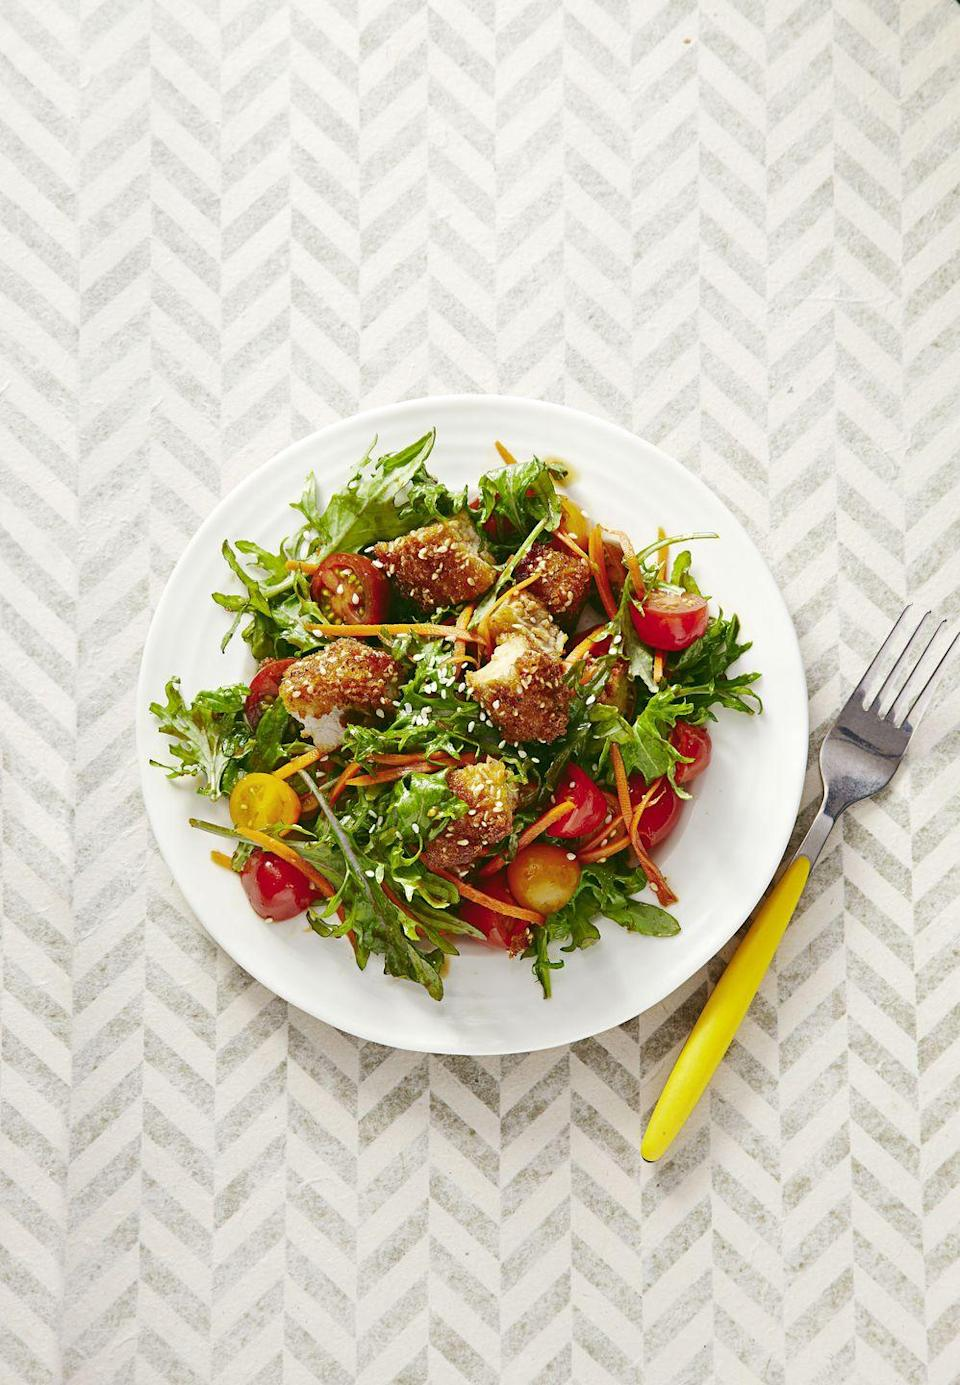 "<p>Eating salad for dinner is a little more exciting when there's crispy fried pork involved.</p><p><a href=""https://www.goodhousekeeping.com/food-recipes/a31838/crispy-sesame-pork-recipe-2-ghk0415/"" rel=""nofollow noopener"" target=""_blank"" data-ylk=""slk:Get the recipe for Crispy Sesame Pork »"" class=""link rapid-noclick-resp""><em>Get the recipe for Crispy Sesame Pork »</em></a></p>"